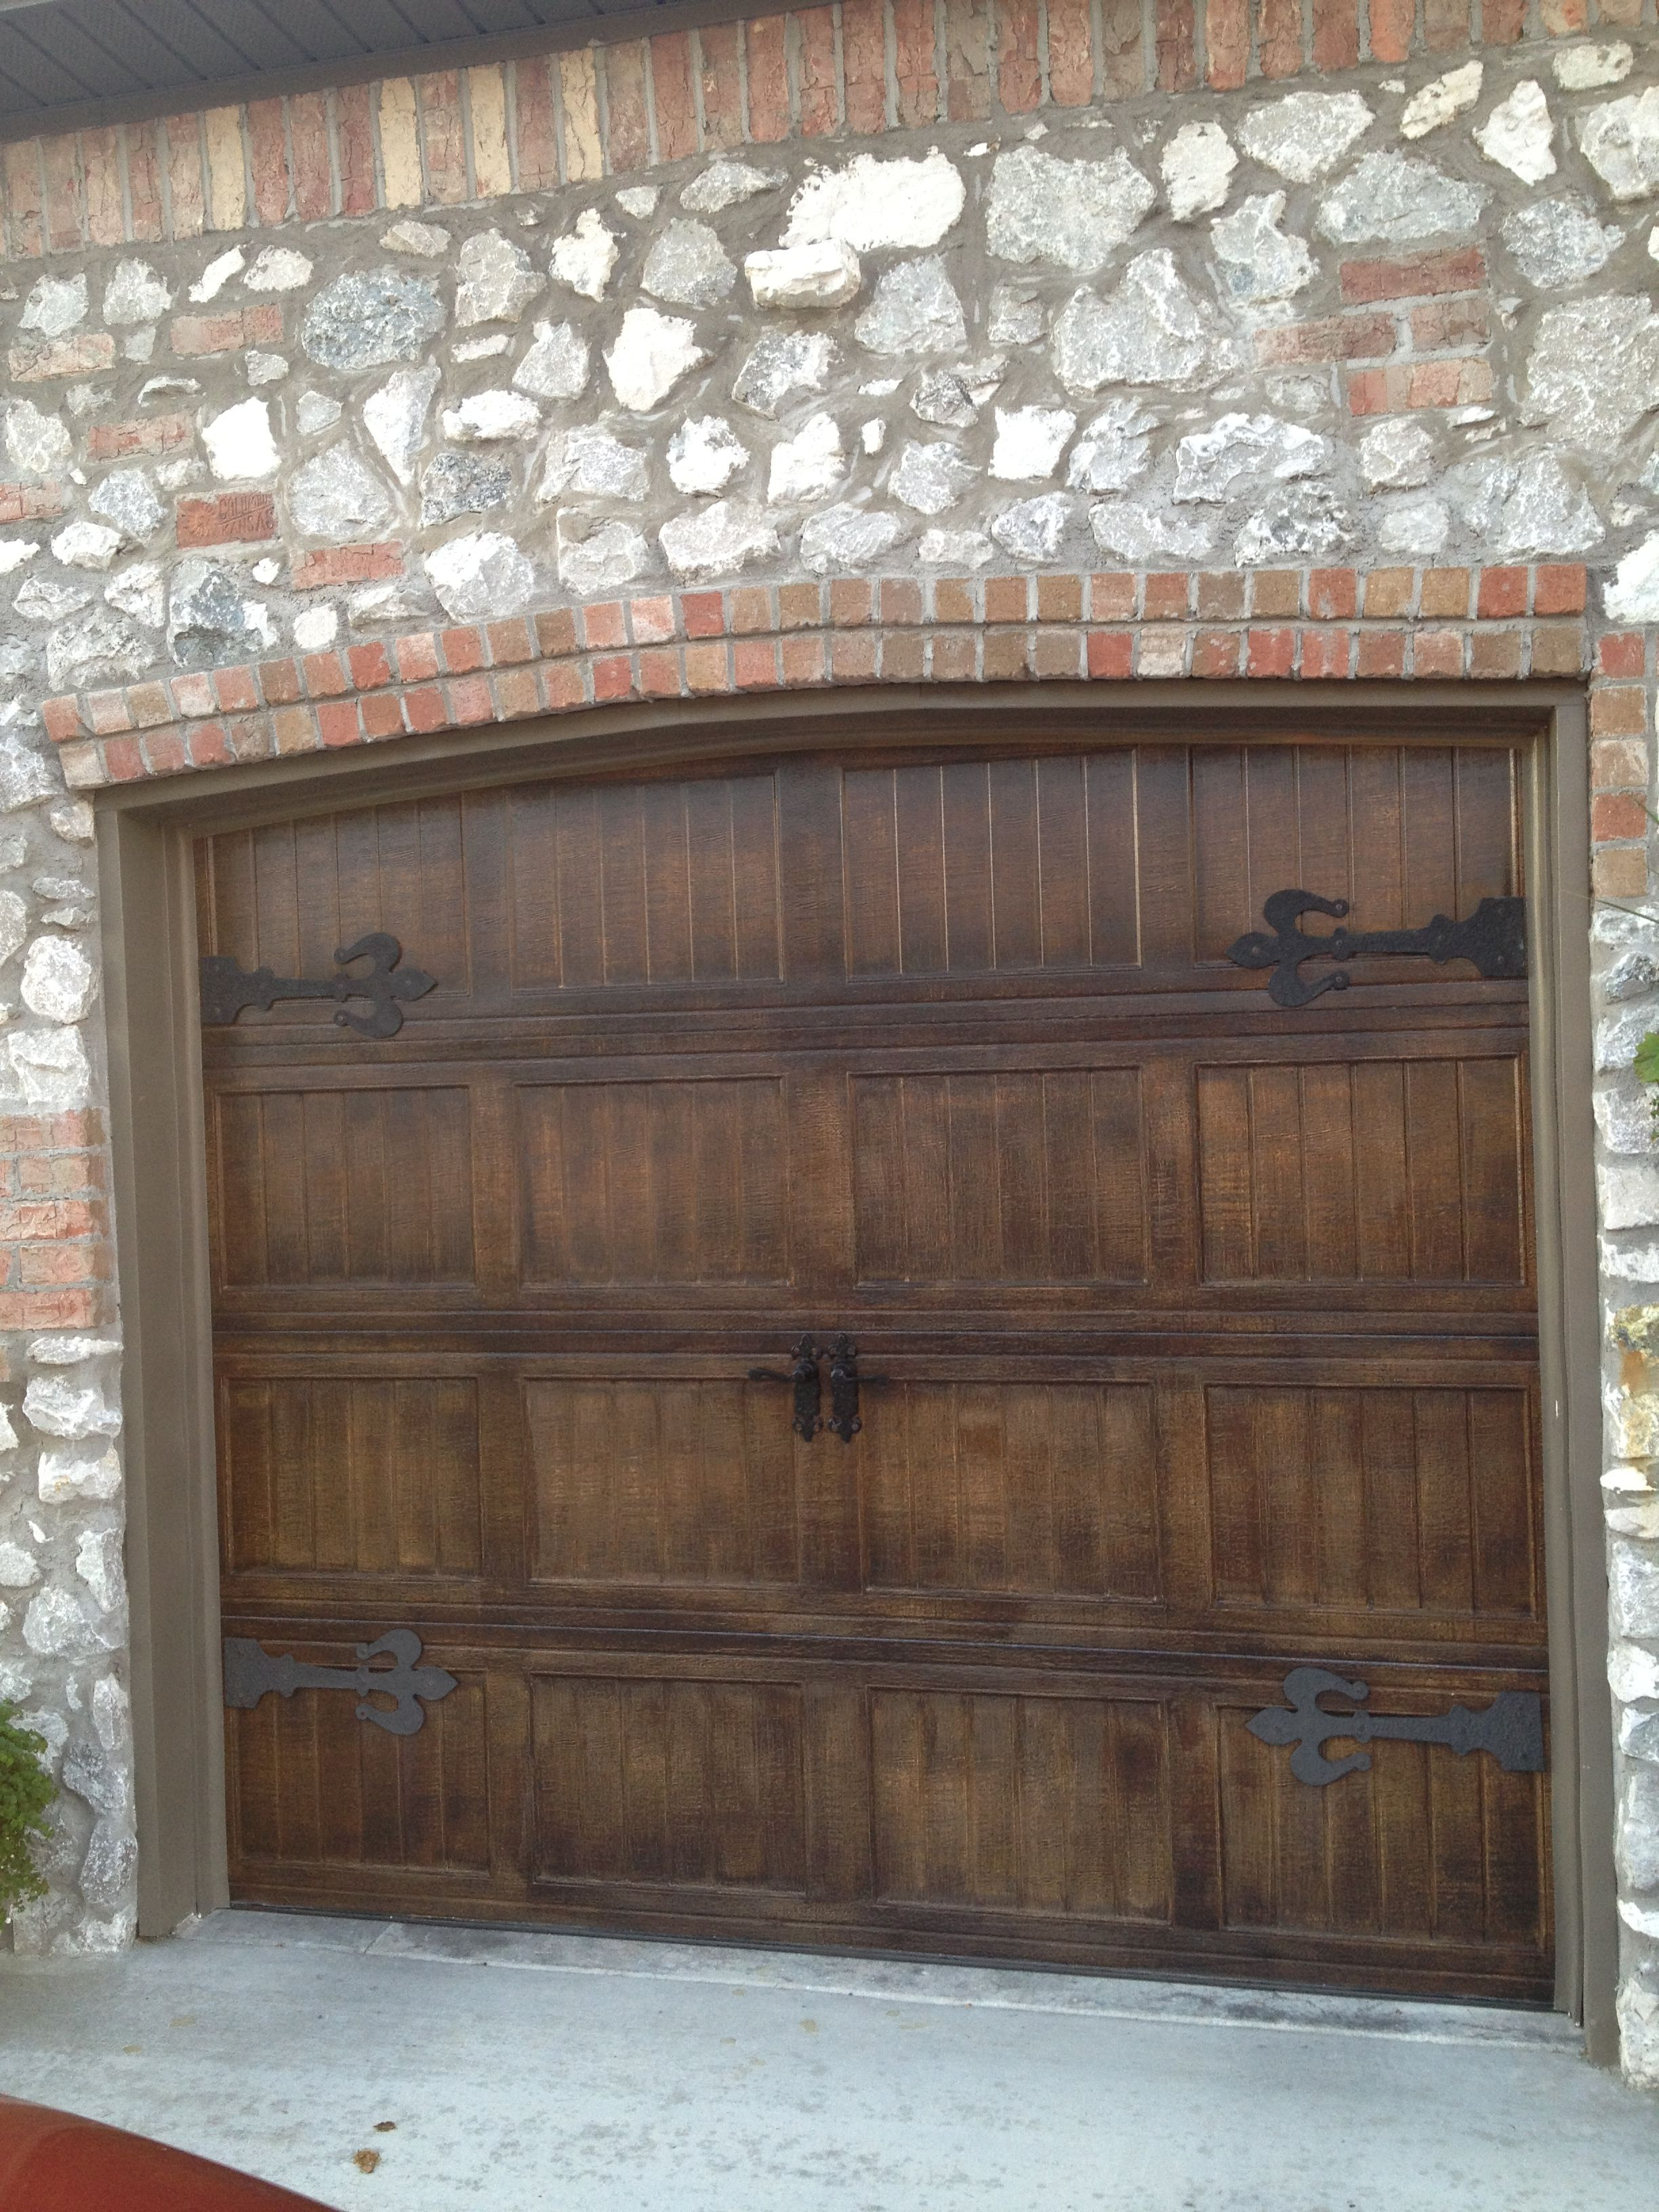 Metal garage doors painted to look like wood with fluer De Lis ... on garage door stain diy, garage floor coating options, garage with entry door, garage door faux wood paint on metal, garage door trim, log homes garage doors wood, garage door painted like wood, garage door spray-paint,